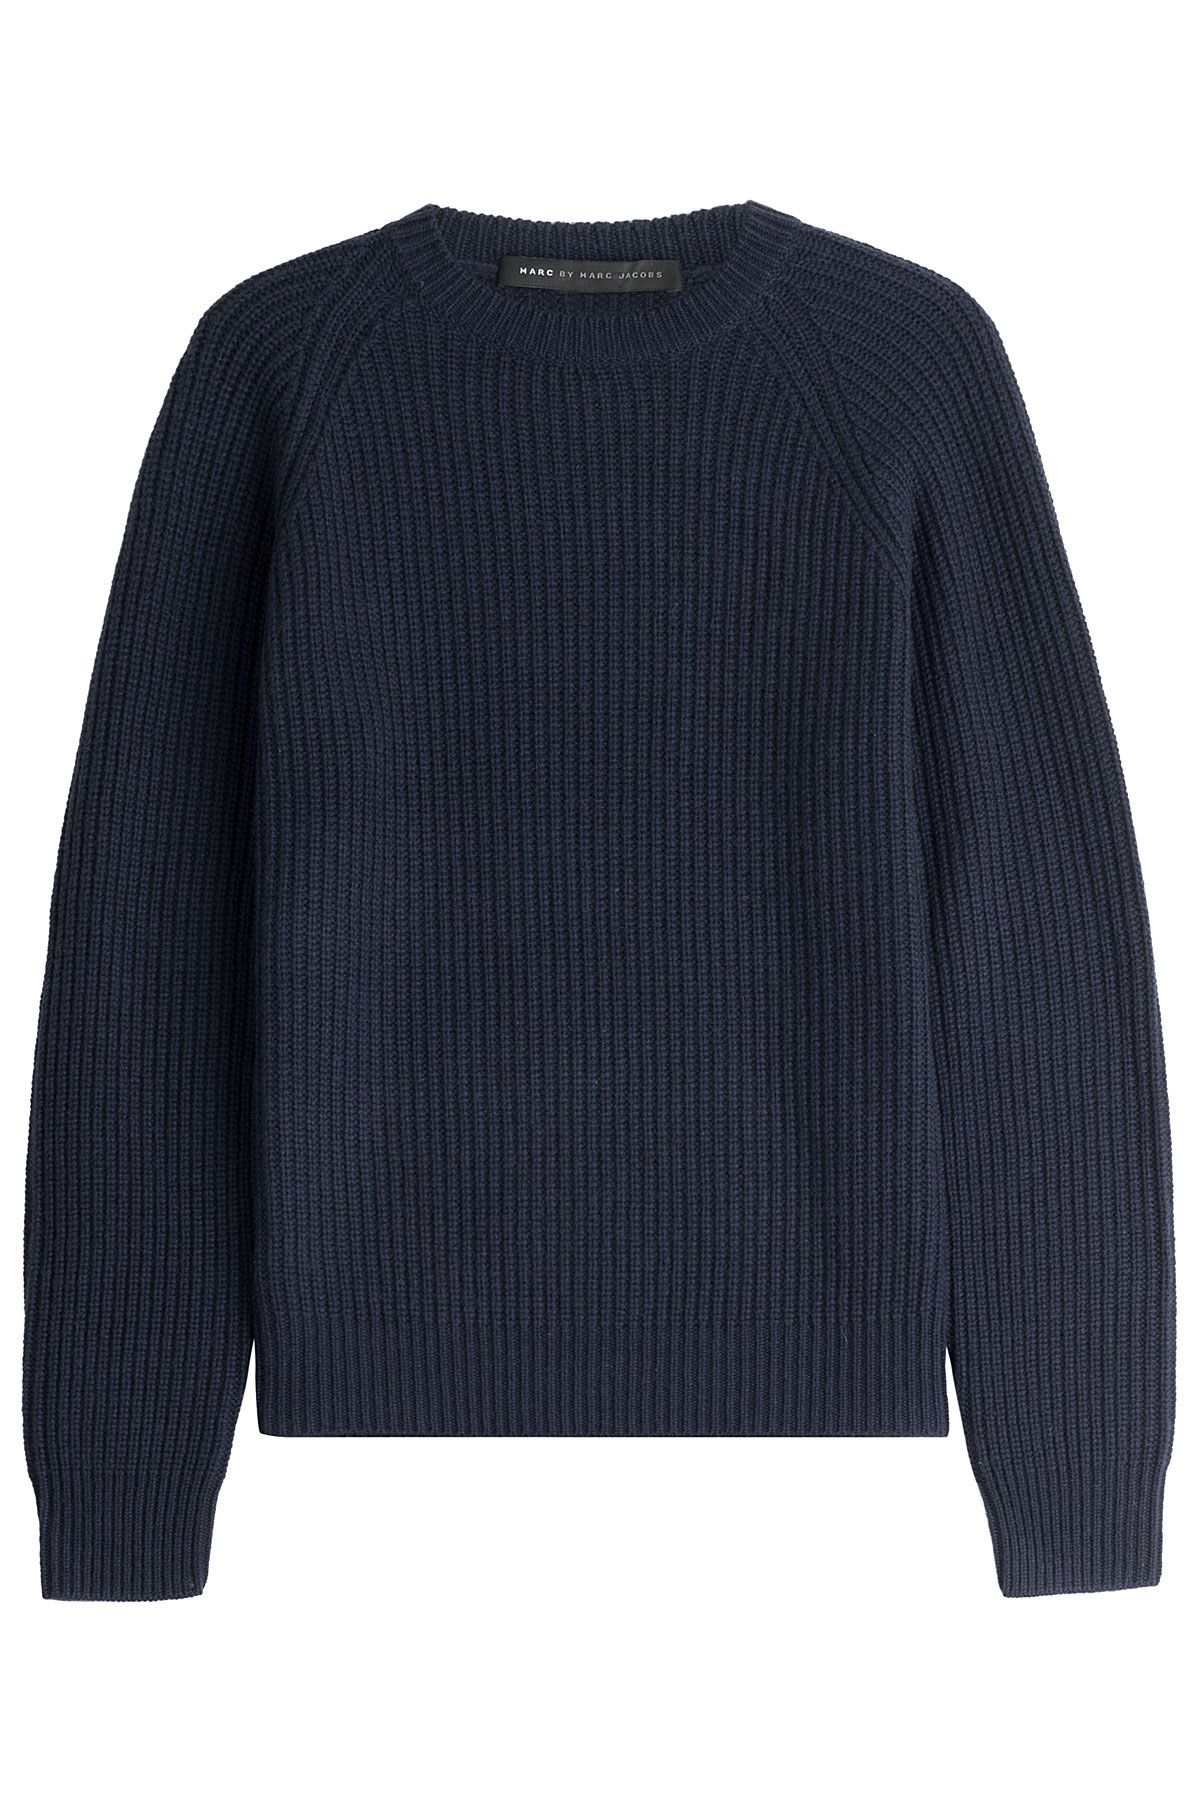 marc by marc jacobs wool cashmere pullover in blue for men. Black Bedroom Furniture Sets. Home Design Ideas